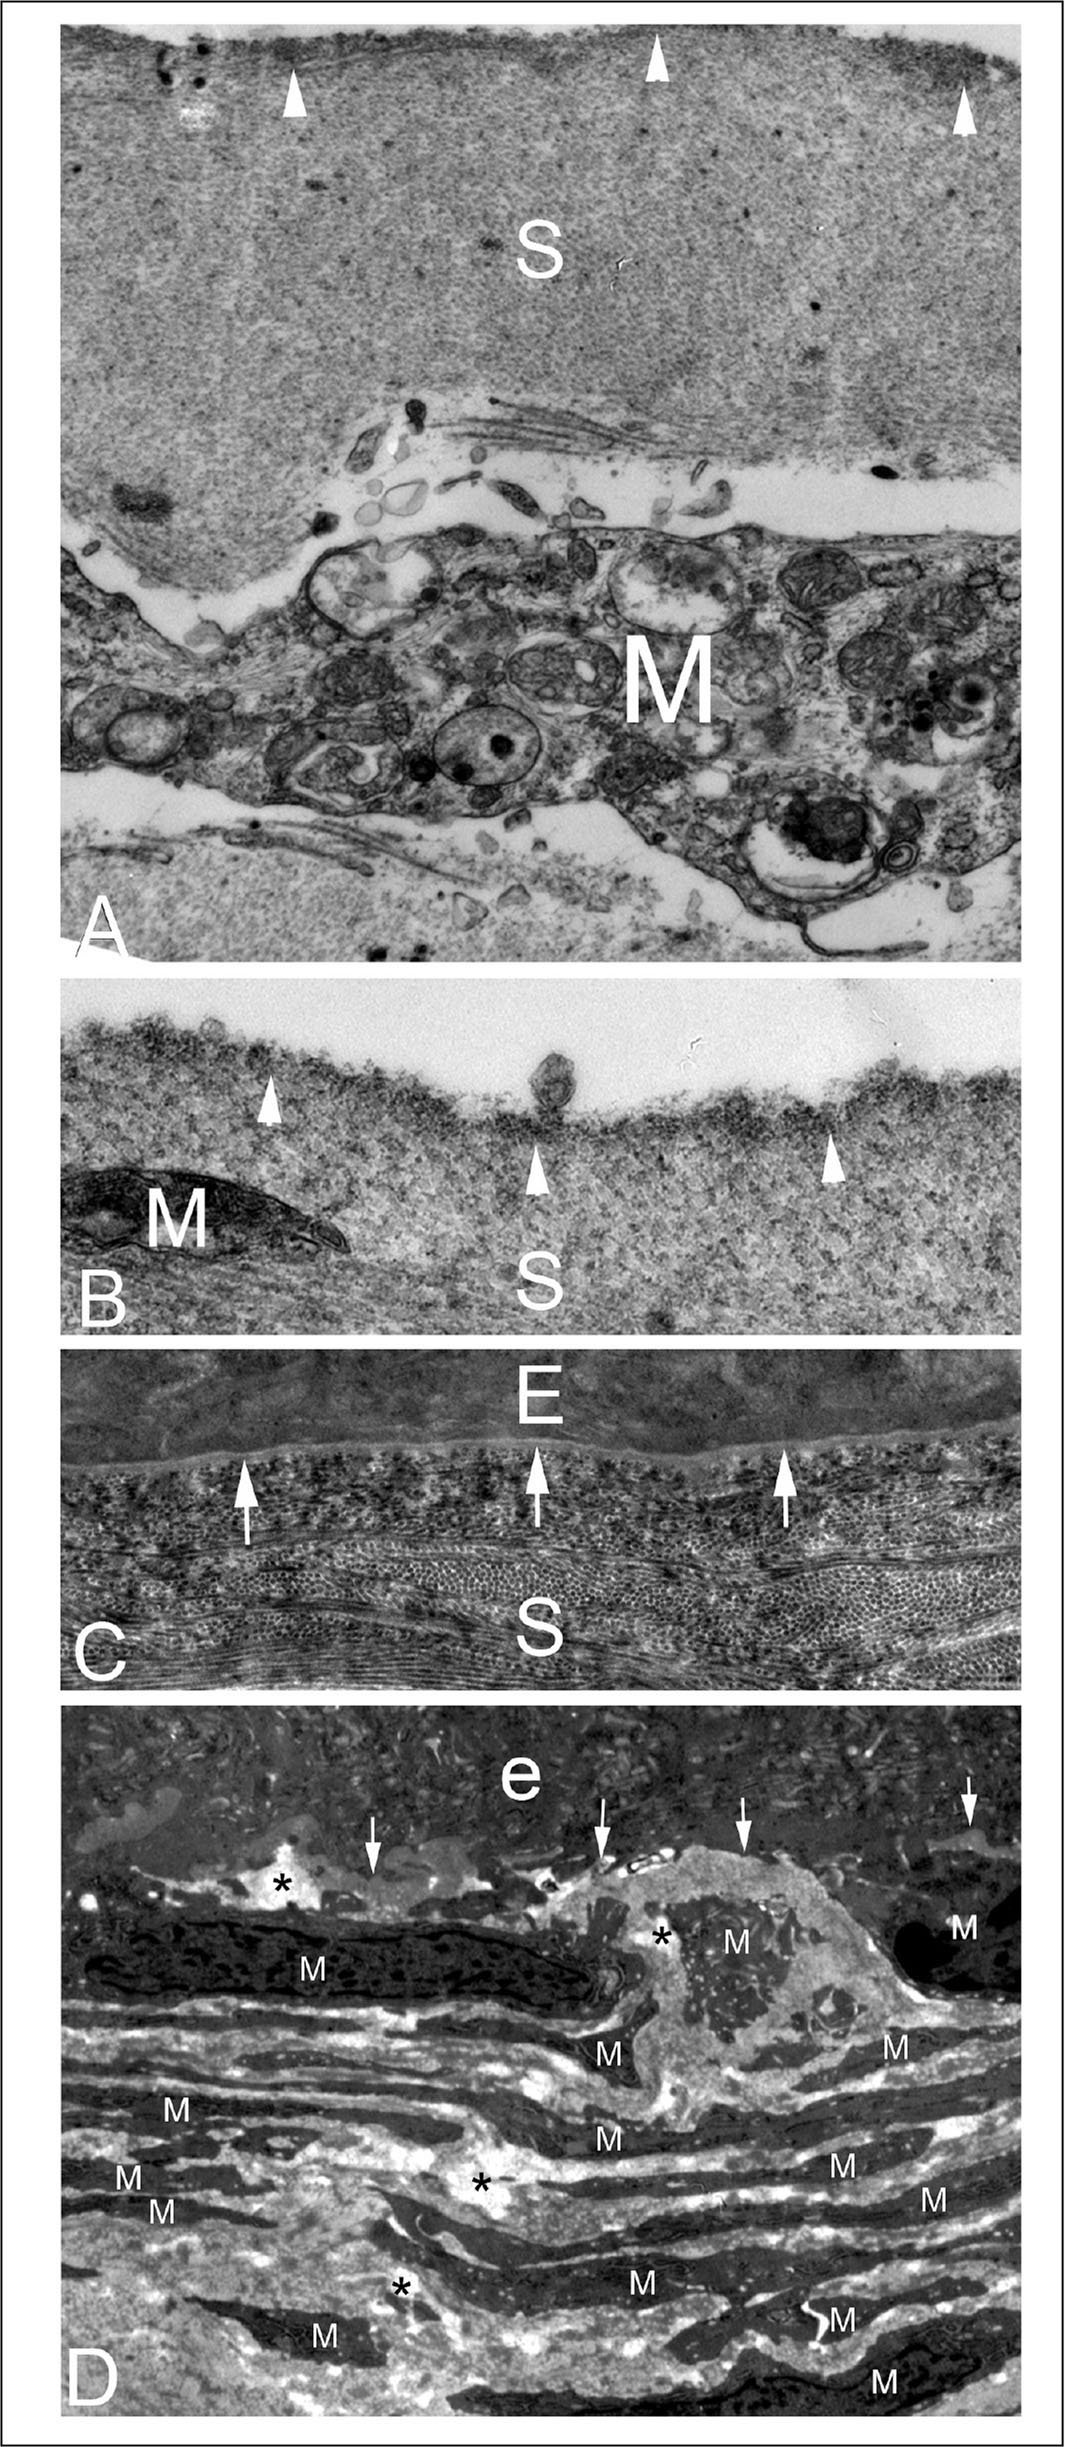 Transmission electron microscopy of rabbit corneas that developed persistent epithelial defects (PED) after −4.50 diopter (D) photorefractive keratectomy (PRK). The cornea in rabbit 1 that had not fully healed by 3 weeks after PRK is imaged by transmission electron microscopy in panels A–C. (A) A high magnification image of the stromal surface within the PED showing an irregular stromal surface (S) with dense material (arrowheads) at and beneath the surface. A large myofibroblast (M) is noted beneath the surface (original magnification ×21,000). (B) A higher magnification image of the stromal surface (S) within the PED again shows the layer of increased density at the stromal surface (arrowheads). A small portion of the end of a myofibroblast (M) is present (original magnification ×42,000). (C) The corneal surface of the same rabbit 1 cornea in the periphery of the excimer laser–ablated PRK zone 2 mm outside of the PED. Note the fully regenerated epithelial basement membrane with lamina lucida and lamina densa (arrows) at 3 weeks after PRK. Also note that the distribution of the collagen fibrils in this area of the stroma (S) is much more compact and distinct than within the PED in panel A (original magnification ×21,000). (D) Transmission electron microscopy of the cornea from rabbit 2 that had not healed by 3 weeks after −4.50 D PRK, which developed scarring, despite the epithelium subsequently closing by 4 weeks after surgery. Within the area of scar, where the PED had persisted for over 3 weeks, the anterior stroma (S) was populated by stacks of myofibroblasts (M) and the disordered extracellular matrix between them. No epithelial basement membrane was detectable at its normal location beneath the epithelium (e) (area indicated by the arrows), even with magnifications up to 40,000×. The asterisk indicates artifactual breaks in tissue that occur during cutting of the section due to weakening of the stroma by disordered extracellular matrix laid down by myofibroblasts (original magnification ×15,000).